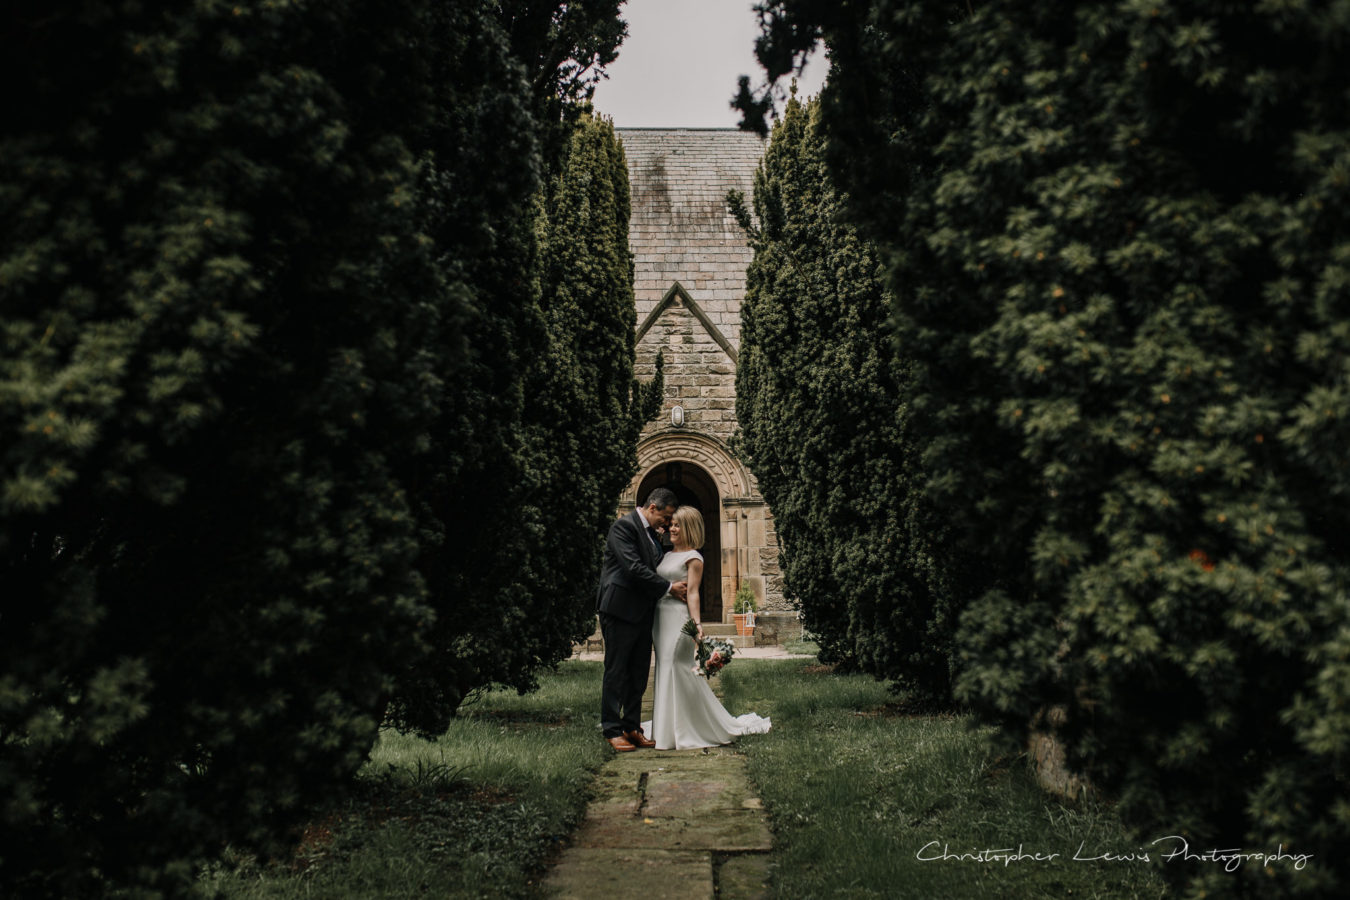 Thief-Hall-Wedding-Christopher-Lewis-Photography-39